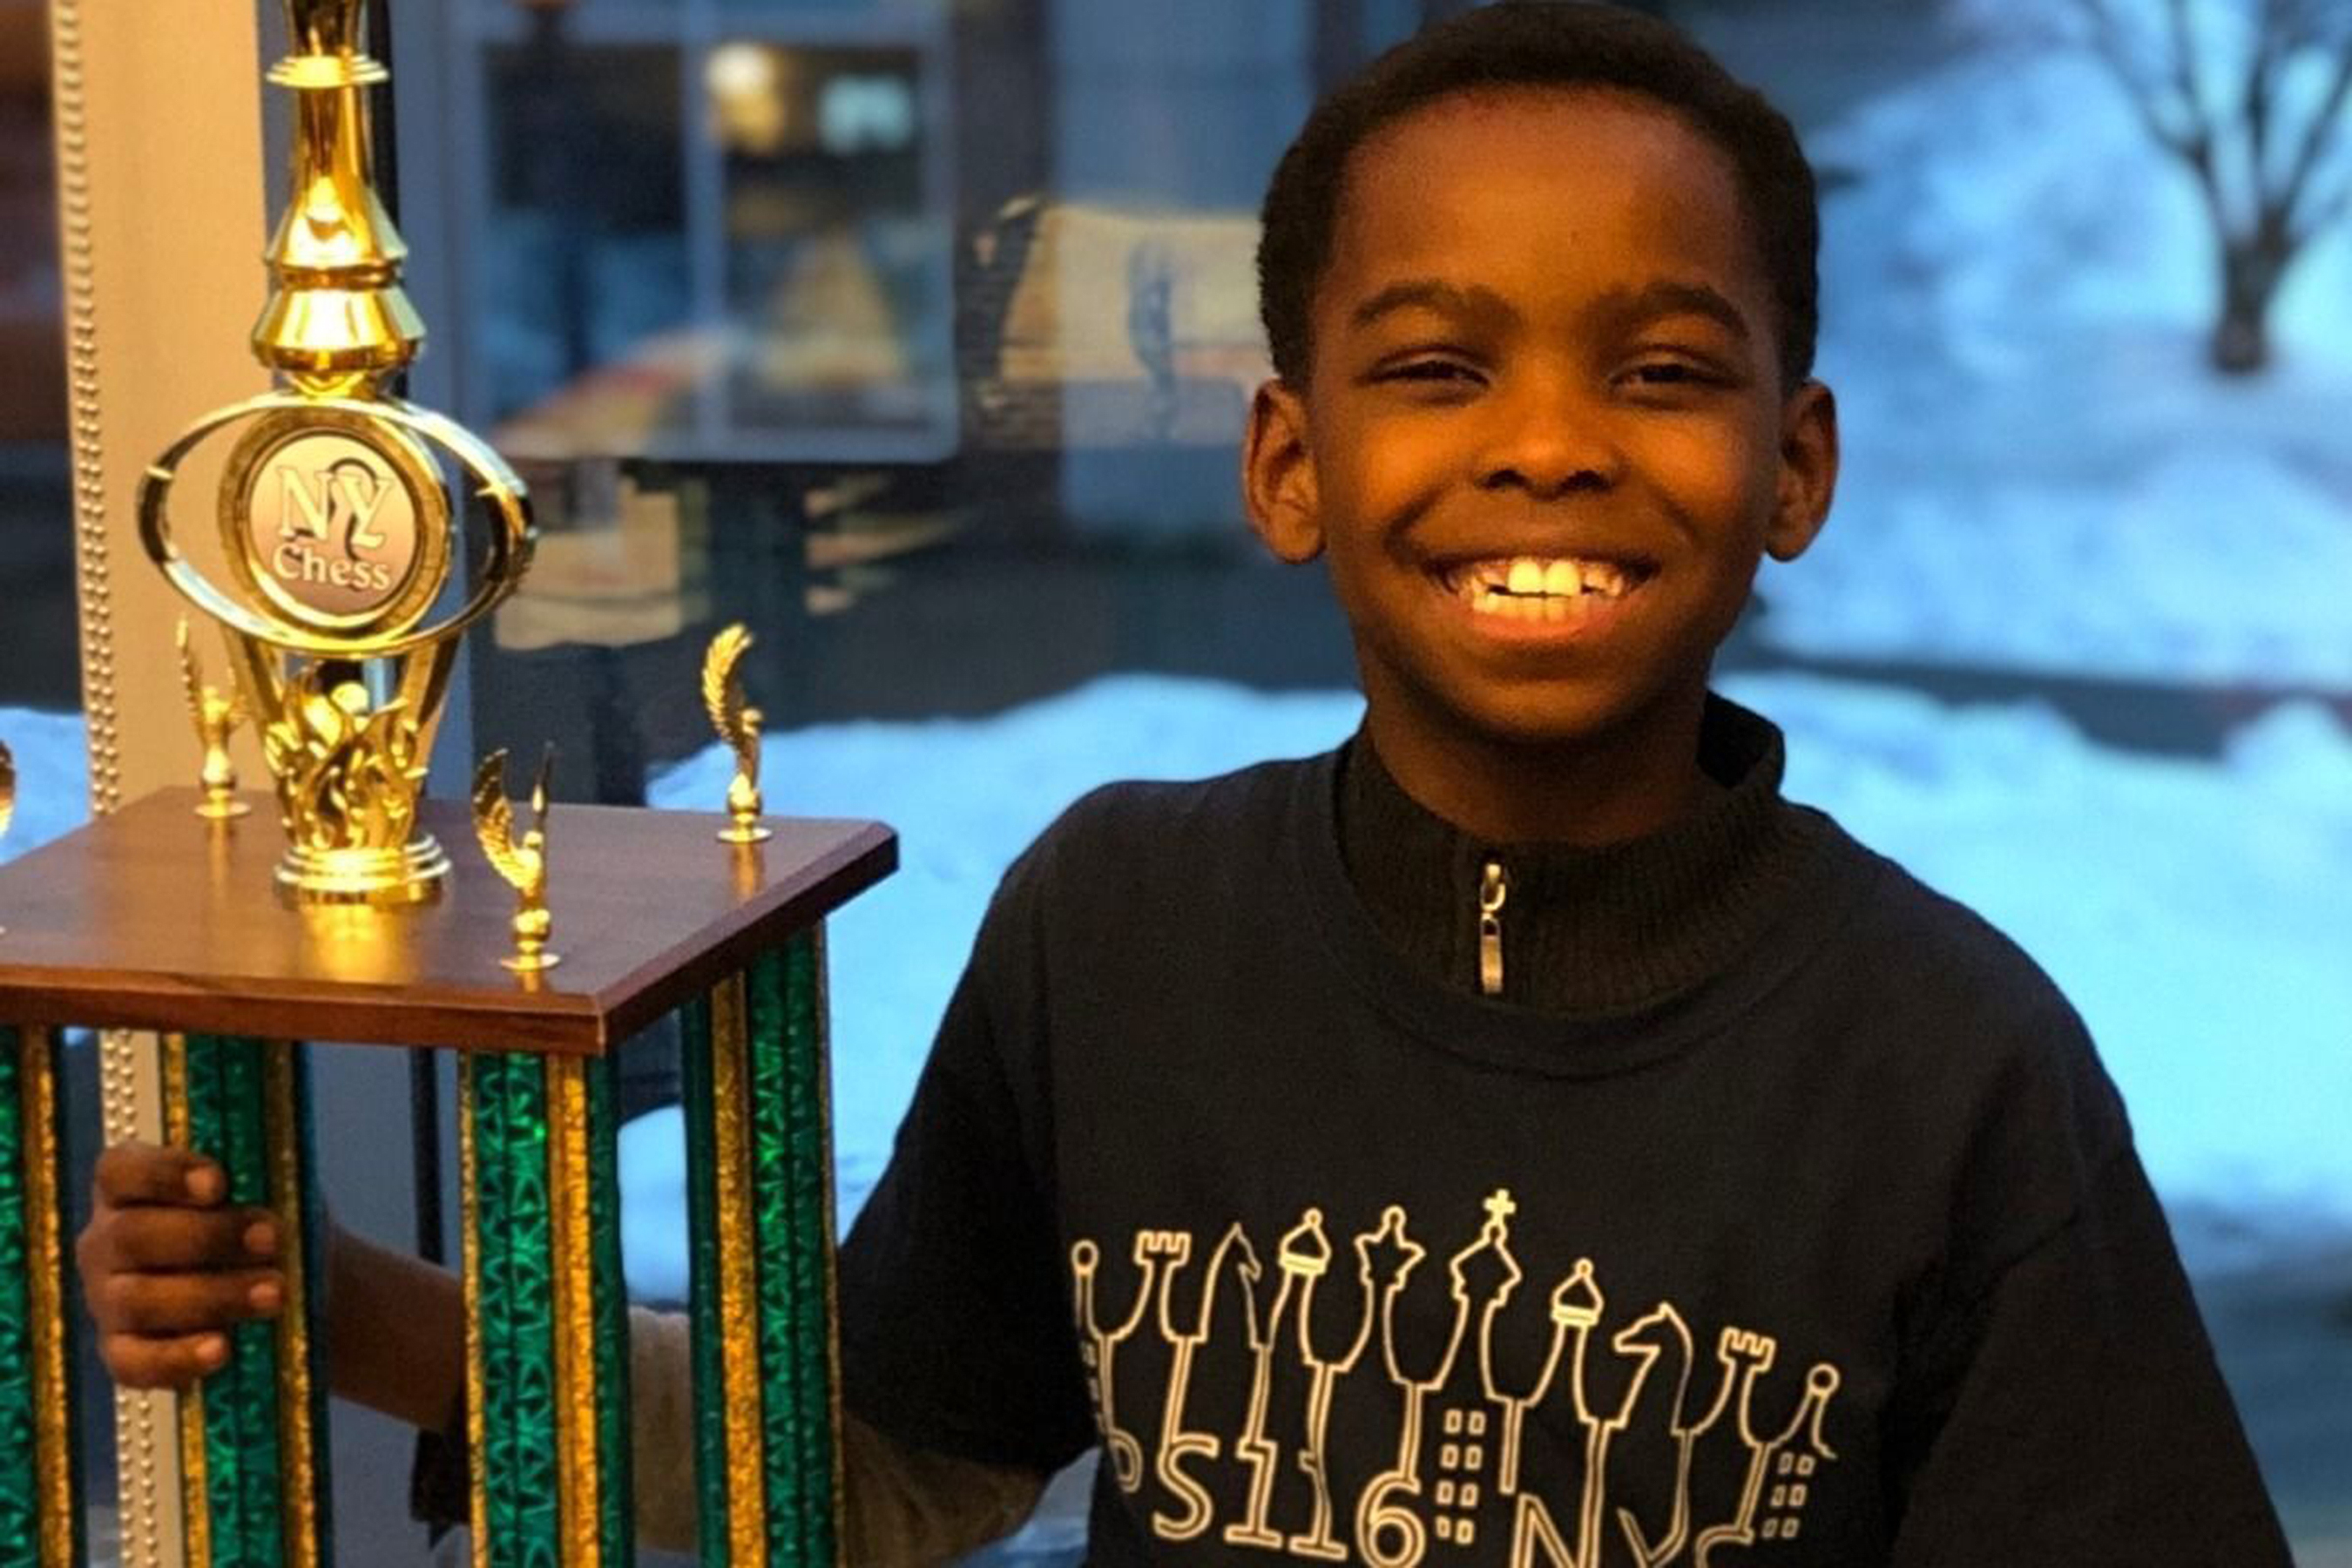 8-Year-Old Homeless Nigerian Refugee Wins New York State Chess Championship